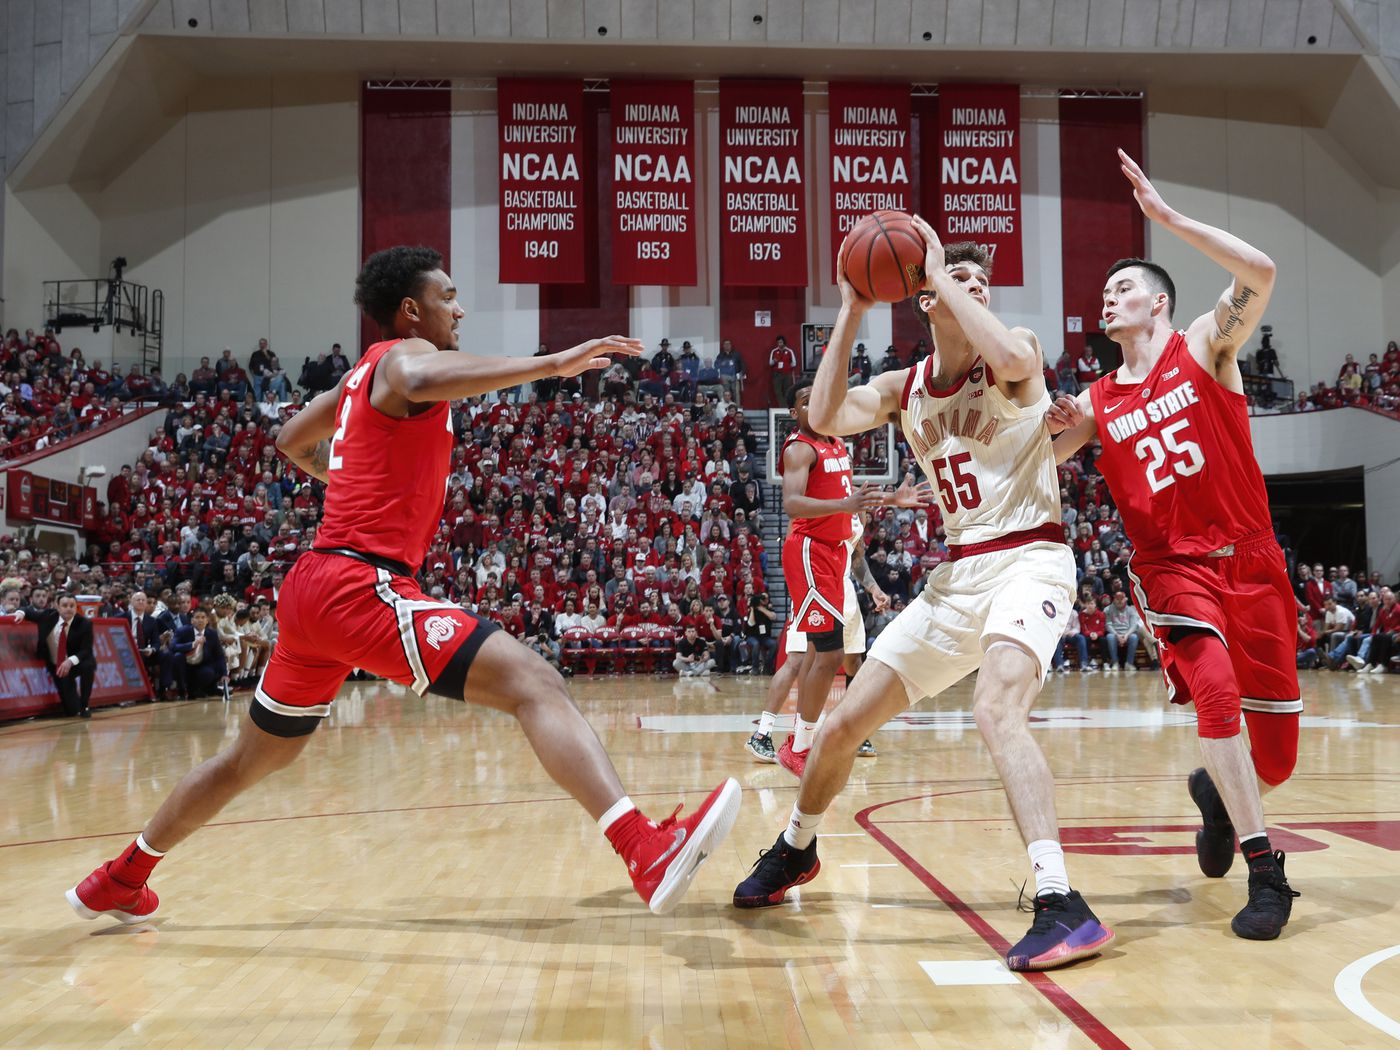 Ohio State Survives Another Nail Biter Defeats Indiana 55 52 Land